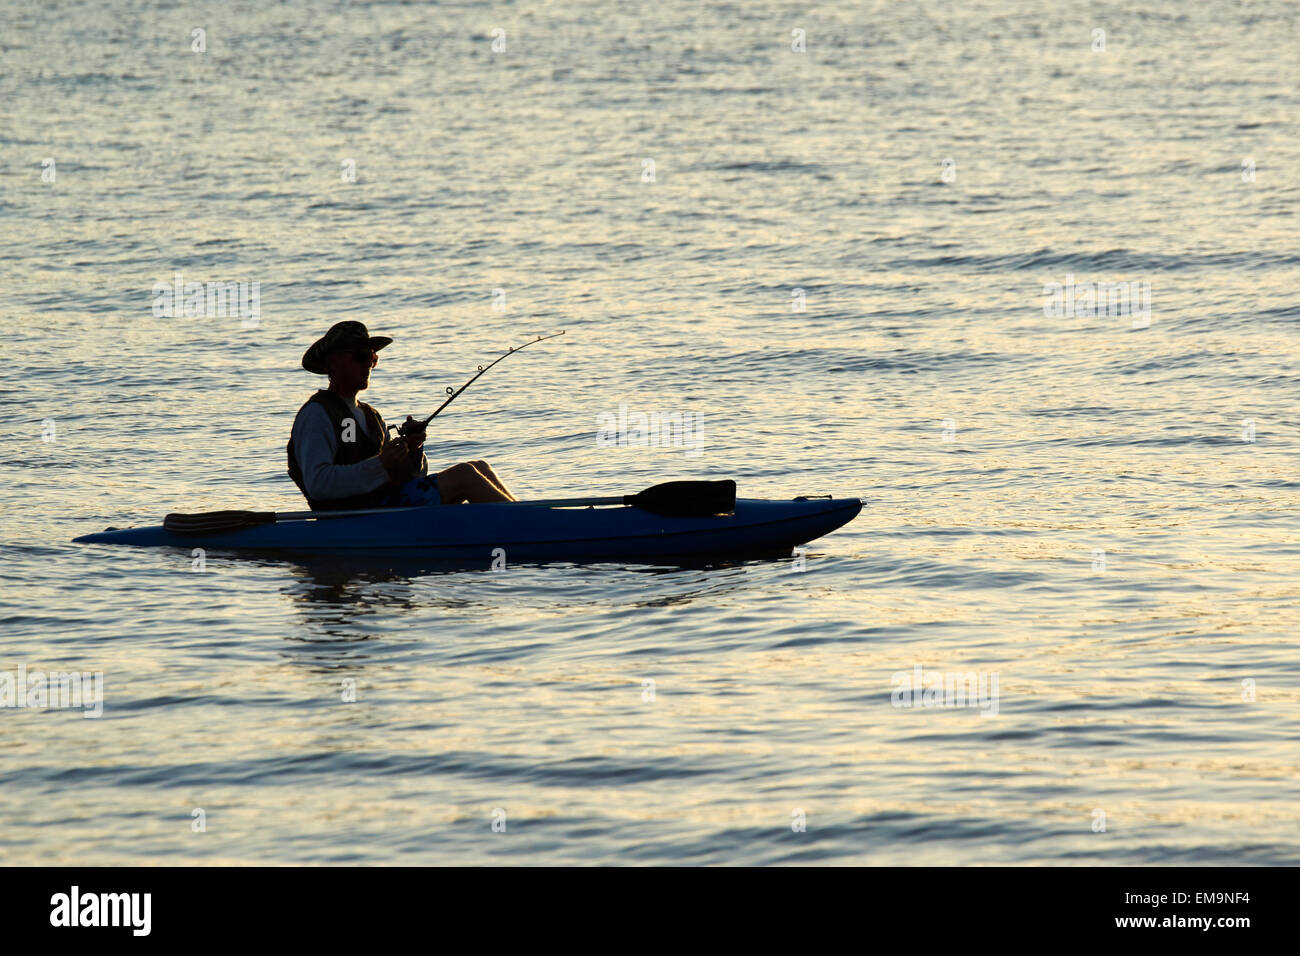 Angling off a canoe - Stock Image